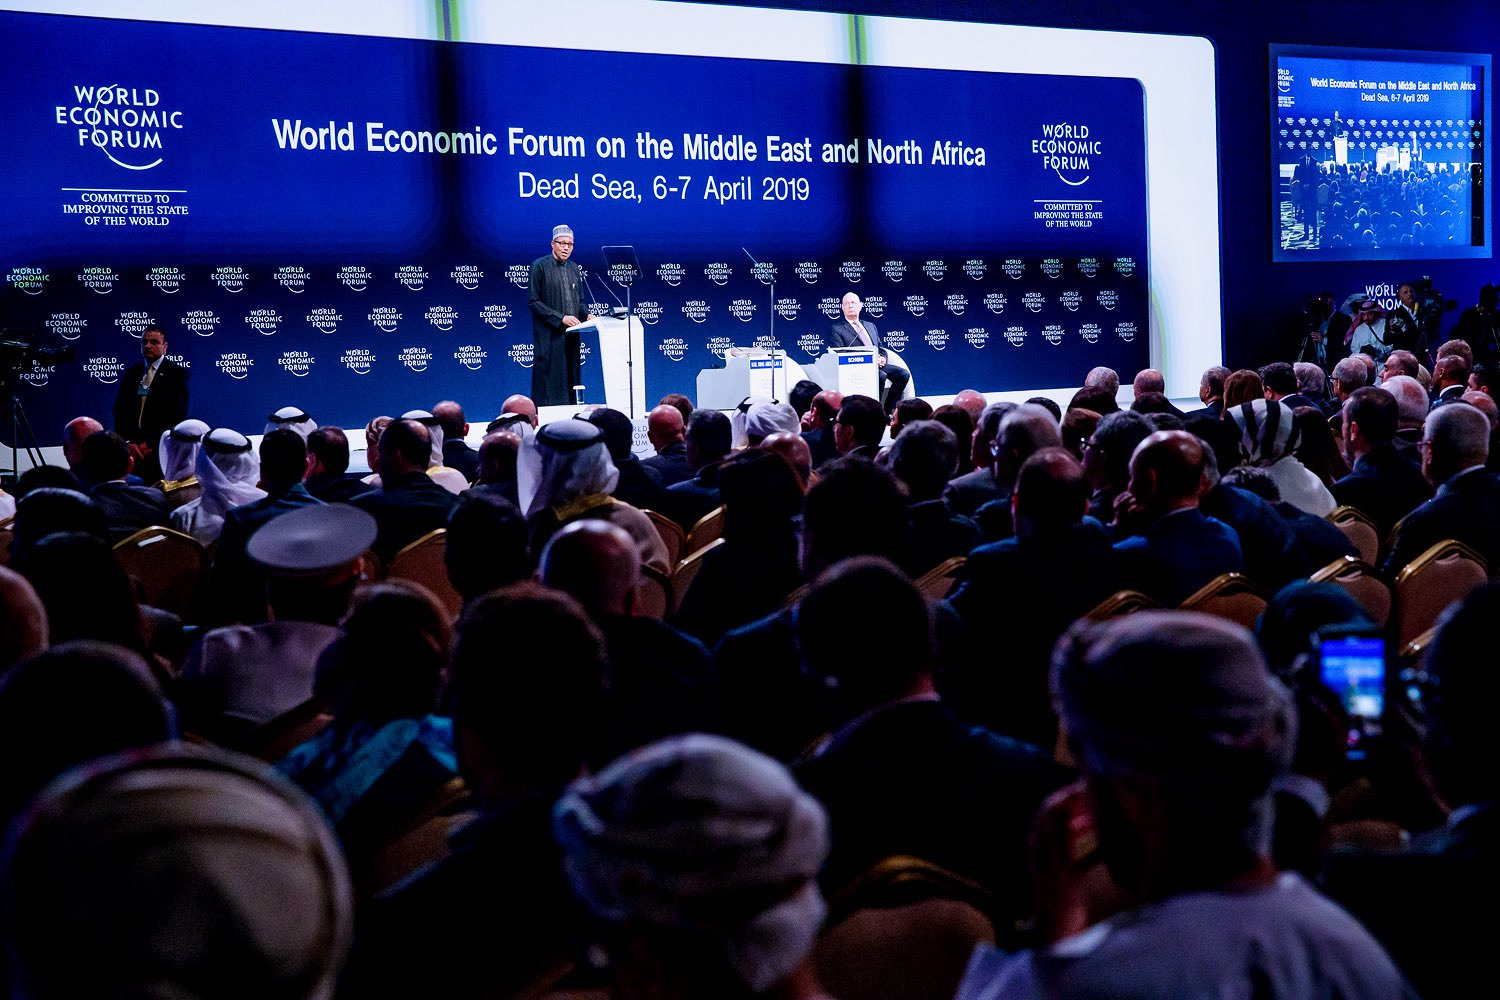 Buhari delivers keynote address at world economic forum